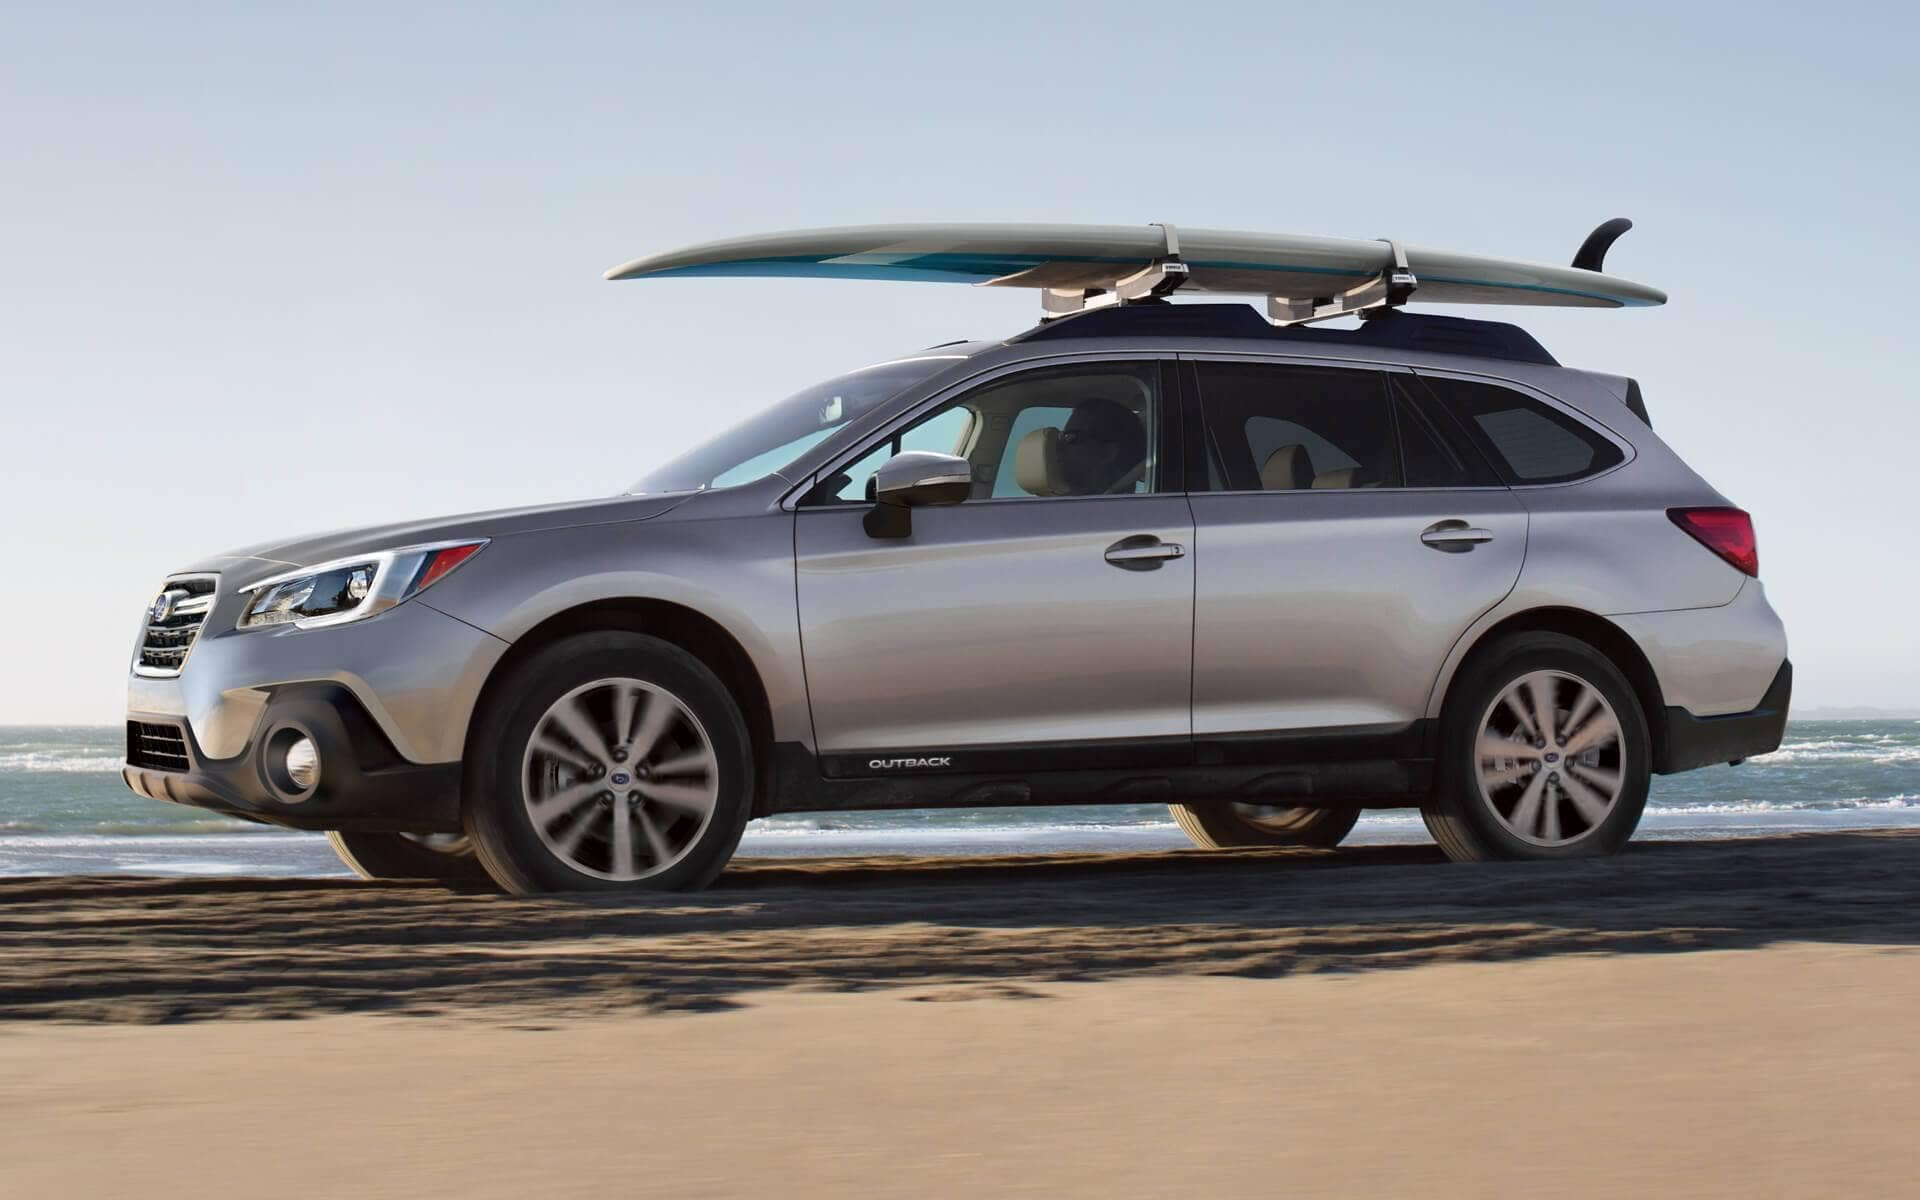 2018 Subaru Outback Exterior with roof rack